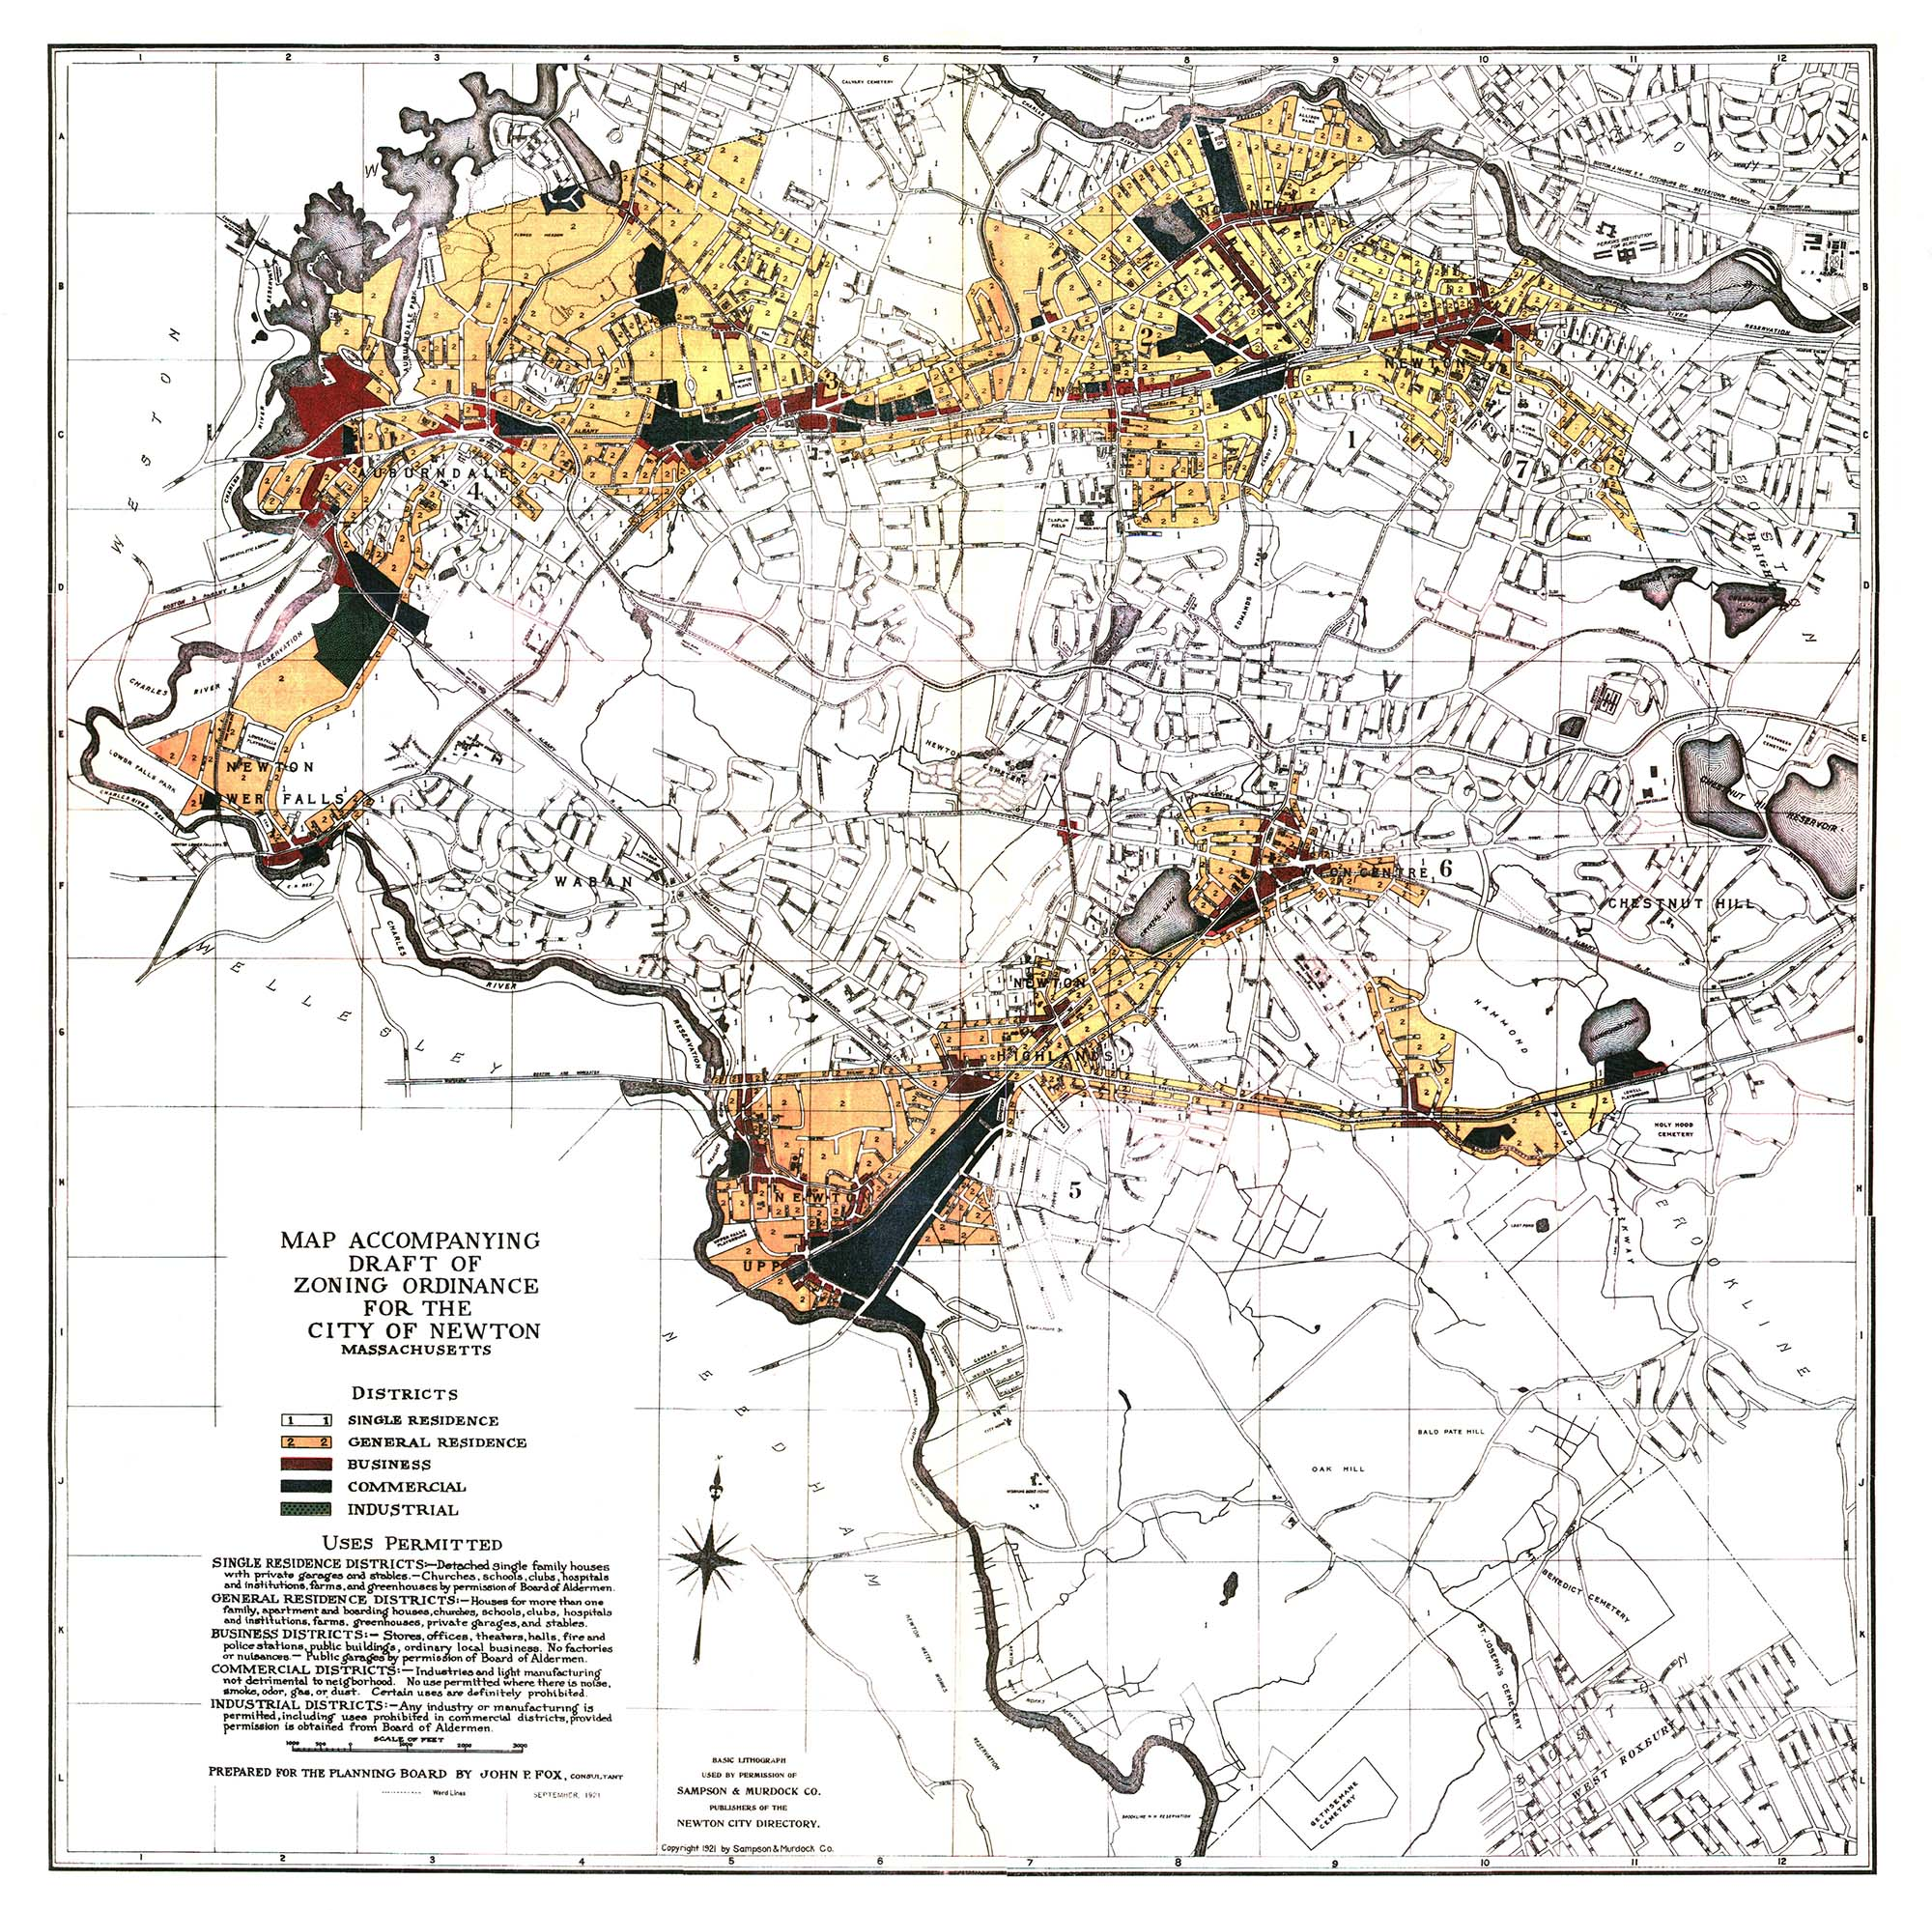 History of Newton 13 Villages One Community Bigelow Oil Energy